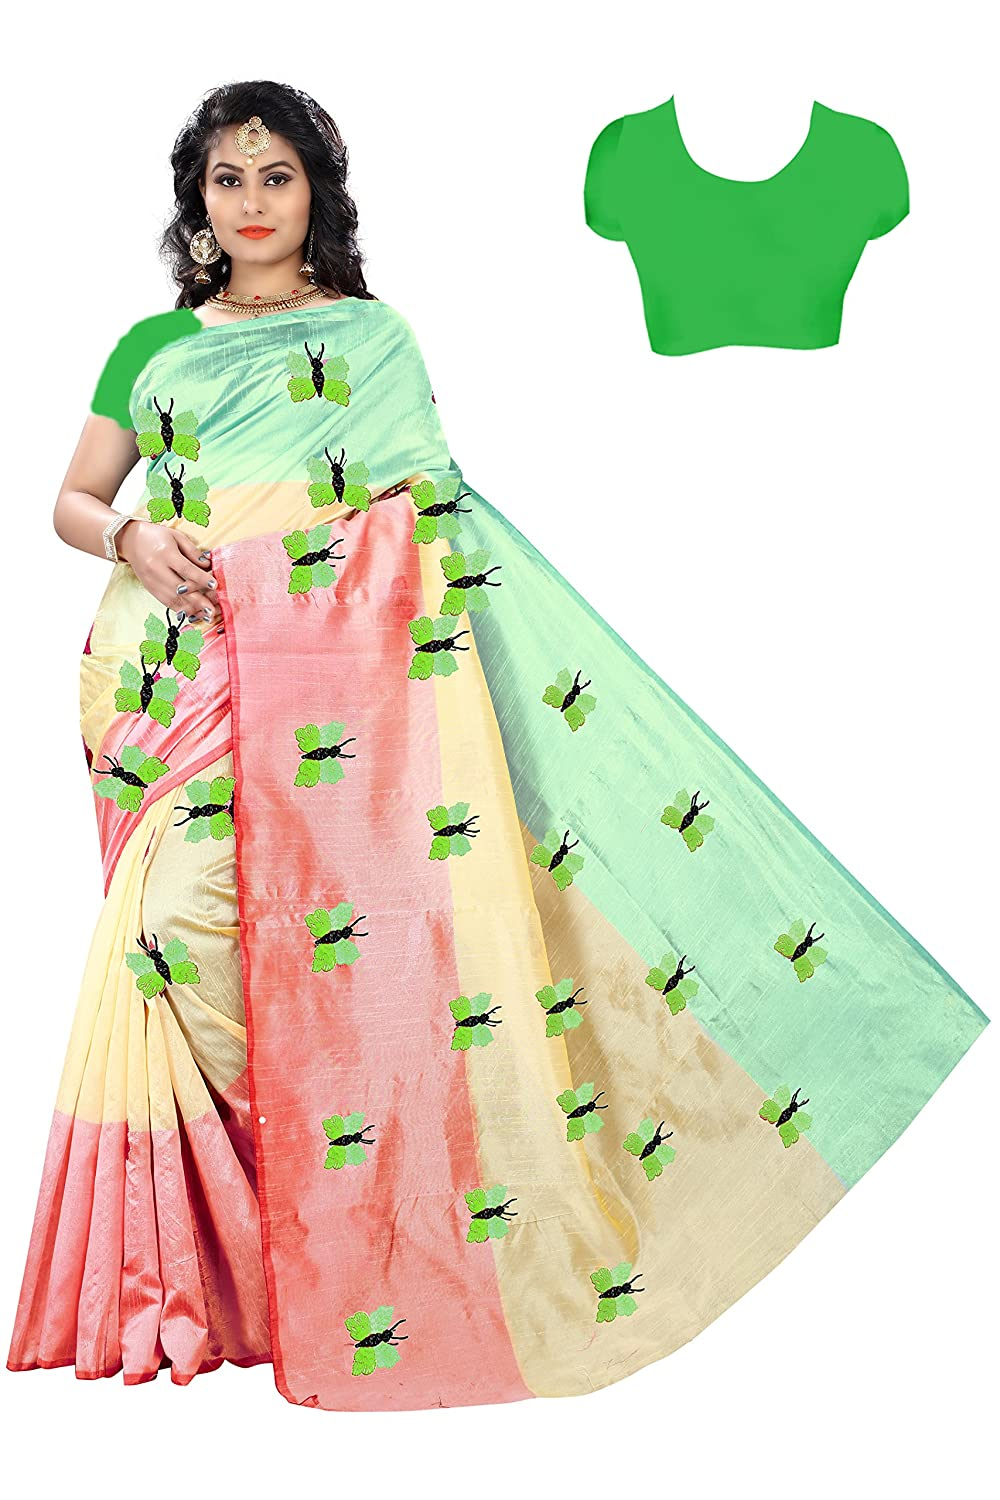 Buy Saree Vaansi Sarees Below 500 Rupees For Women Party Wear Latest Design New Collection Silk Sarees Offer Designer Saree Collection 2017 In Latest Saree With Designer Free Size Beautiful For Women